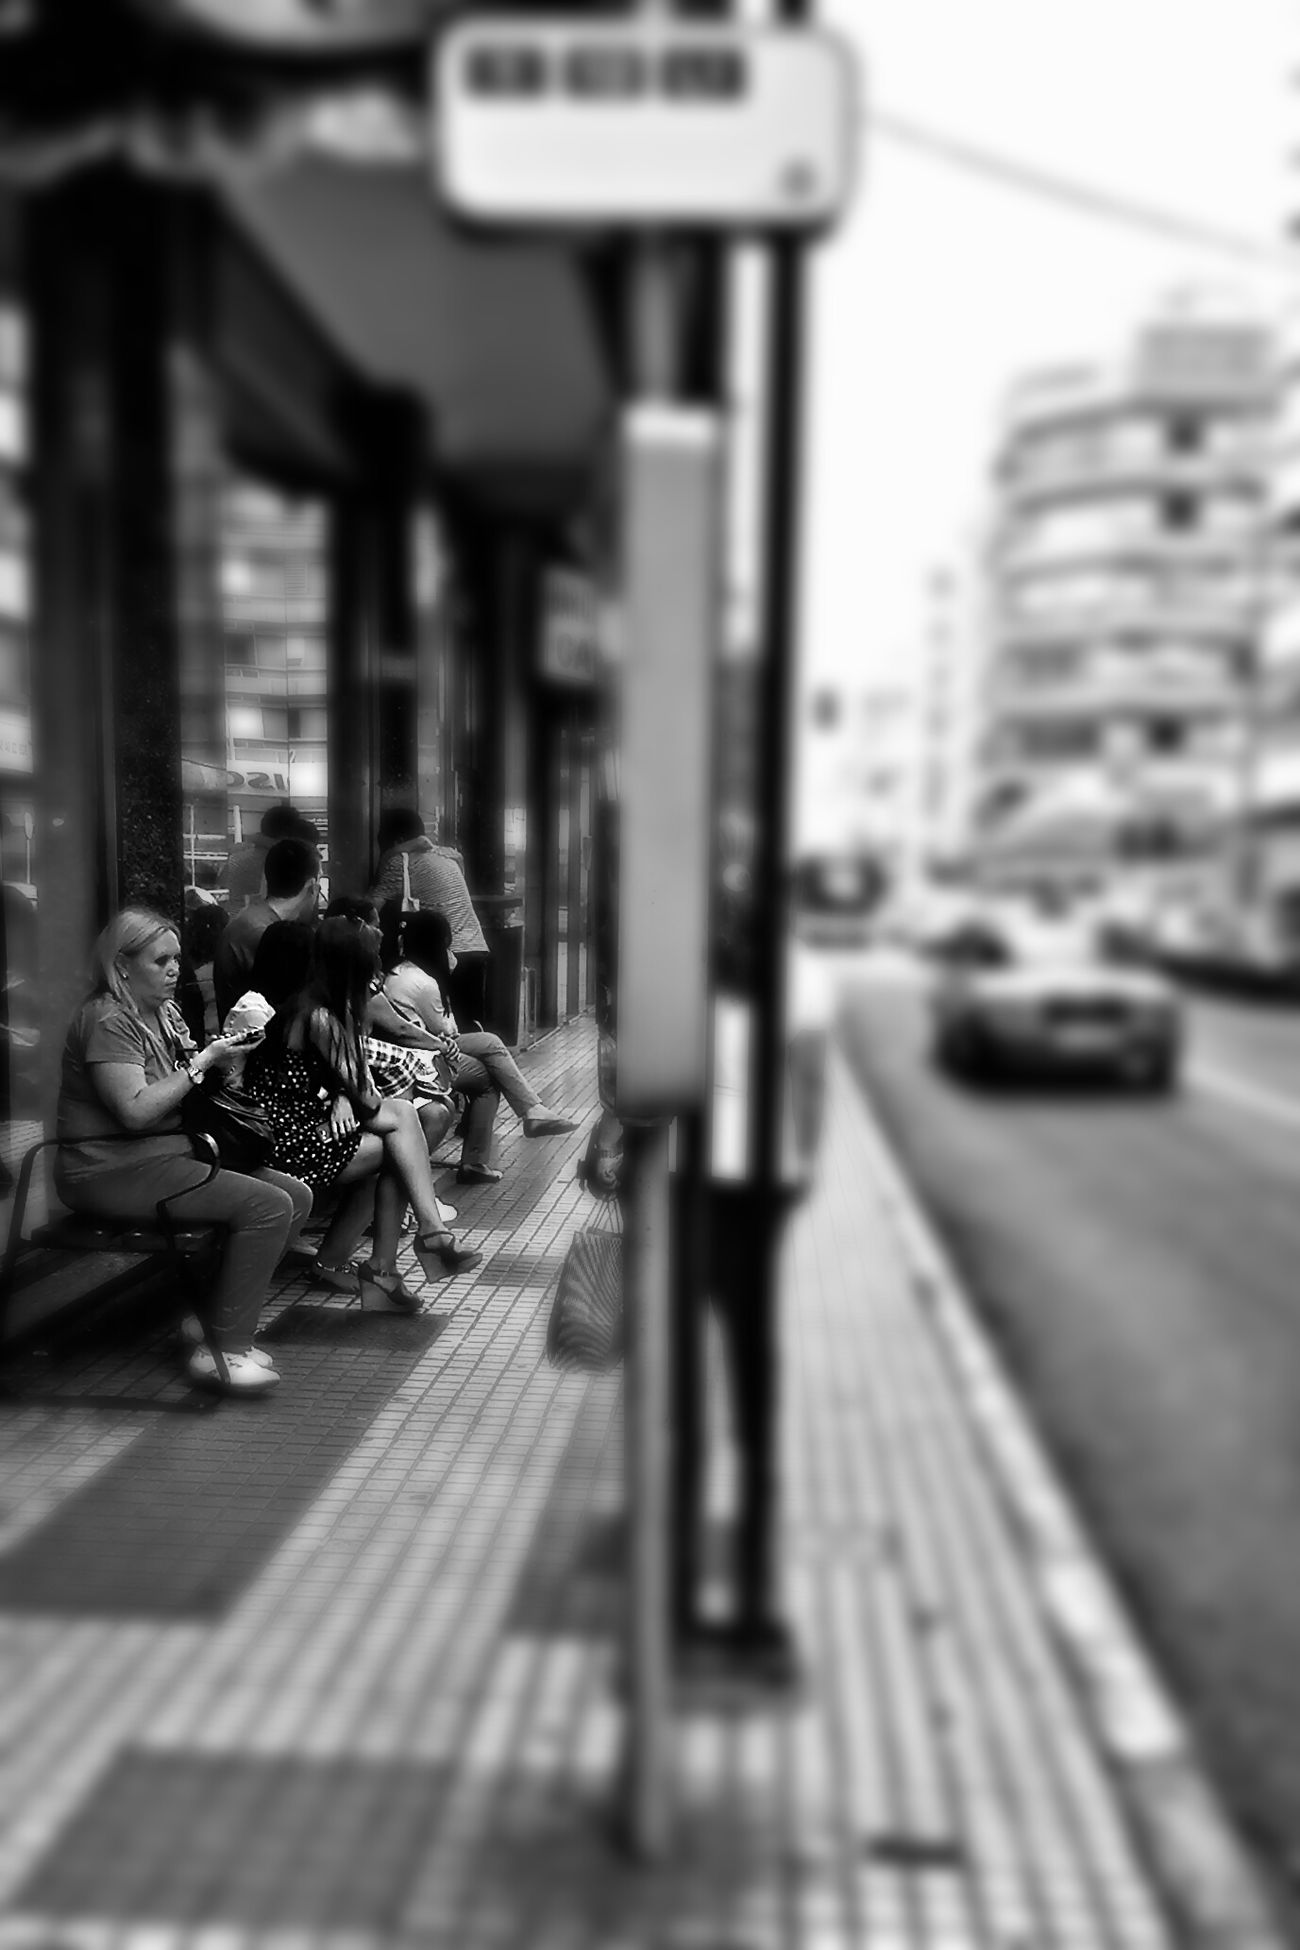 Waiting for the bus to go back home and enjoy the weekend with you... mmm...| Esperando la guagua para volver a casa y disfrutar el finde contigo ... mmm... GOOD WEEKEND FOR EVERY@NE Eyeemers!! QUE TENGAIS UN BUEN FINDE TOD@S LOS EYEEMER@S!! EyeEm Best Edits No Edit No Fun ...Unknow PeoplE... Bw_collection